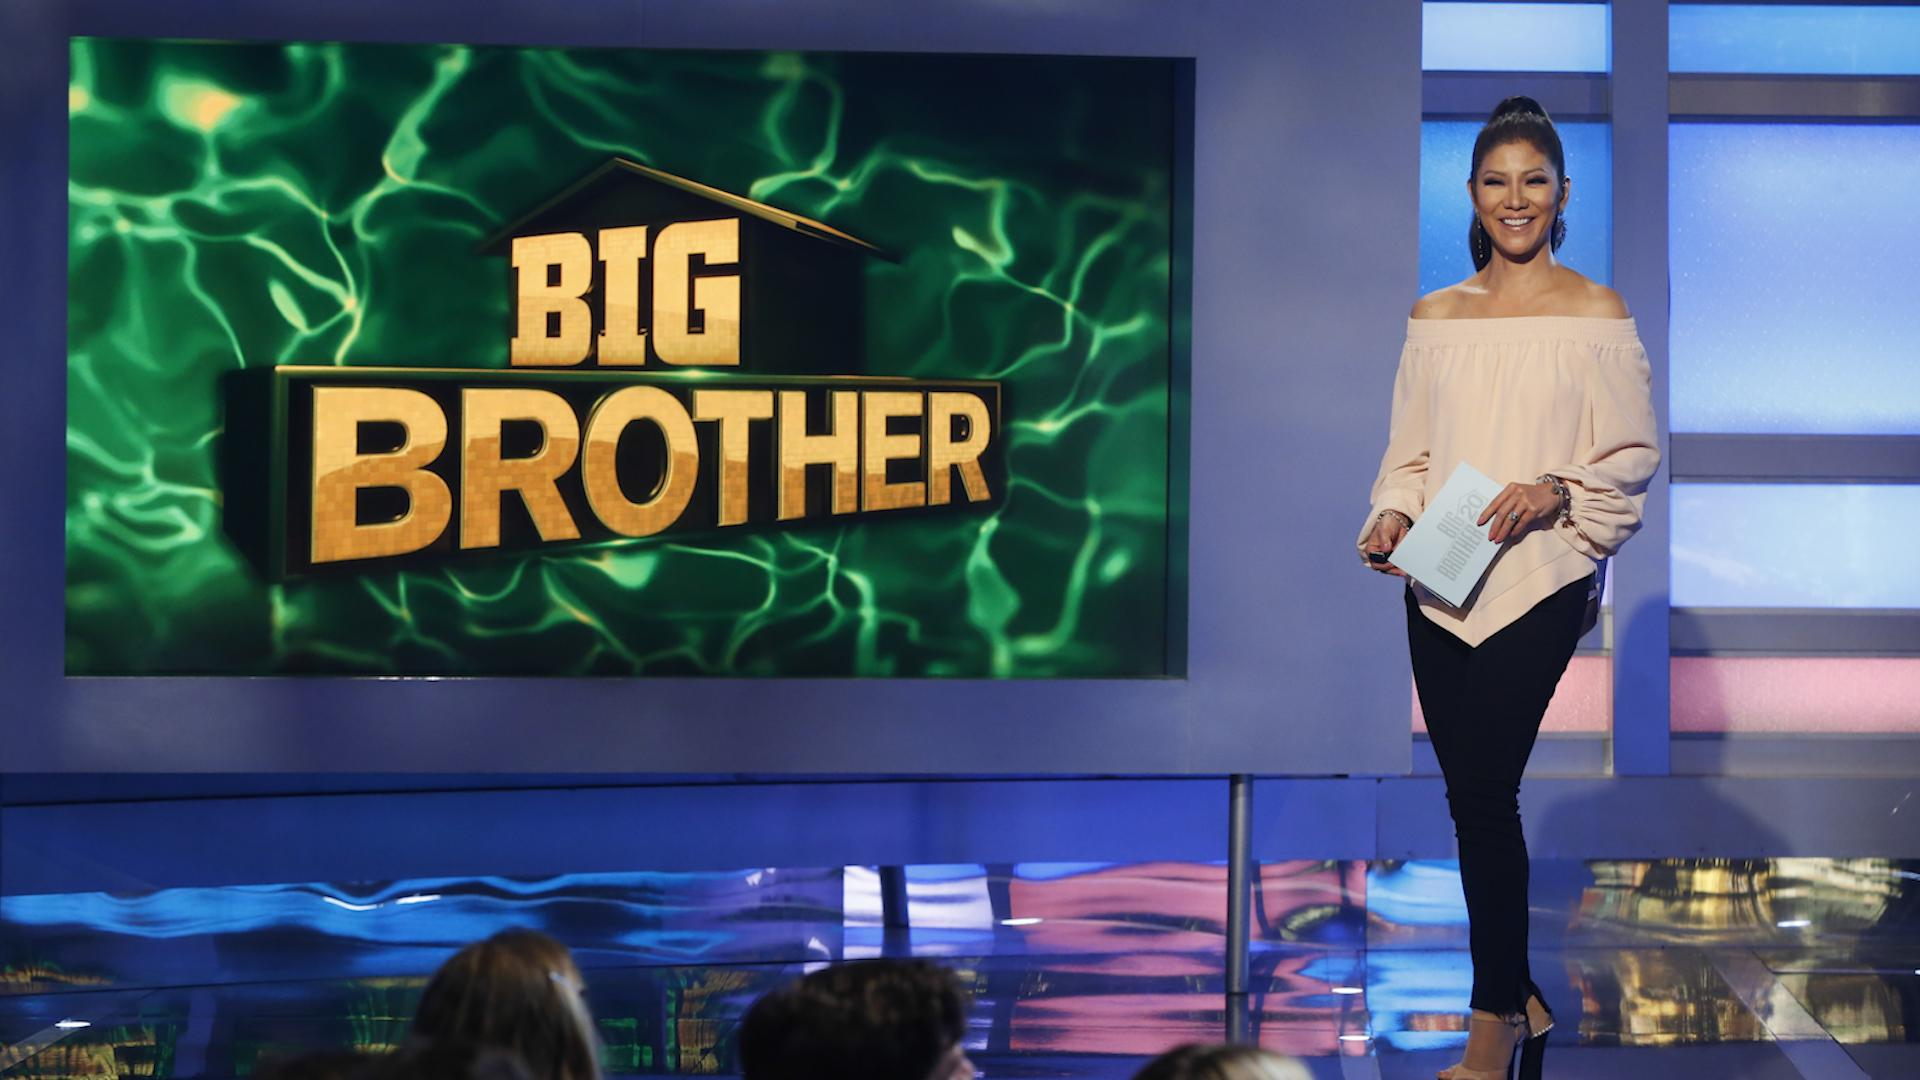 Big Brother Season 21 Episode 10